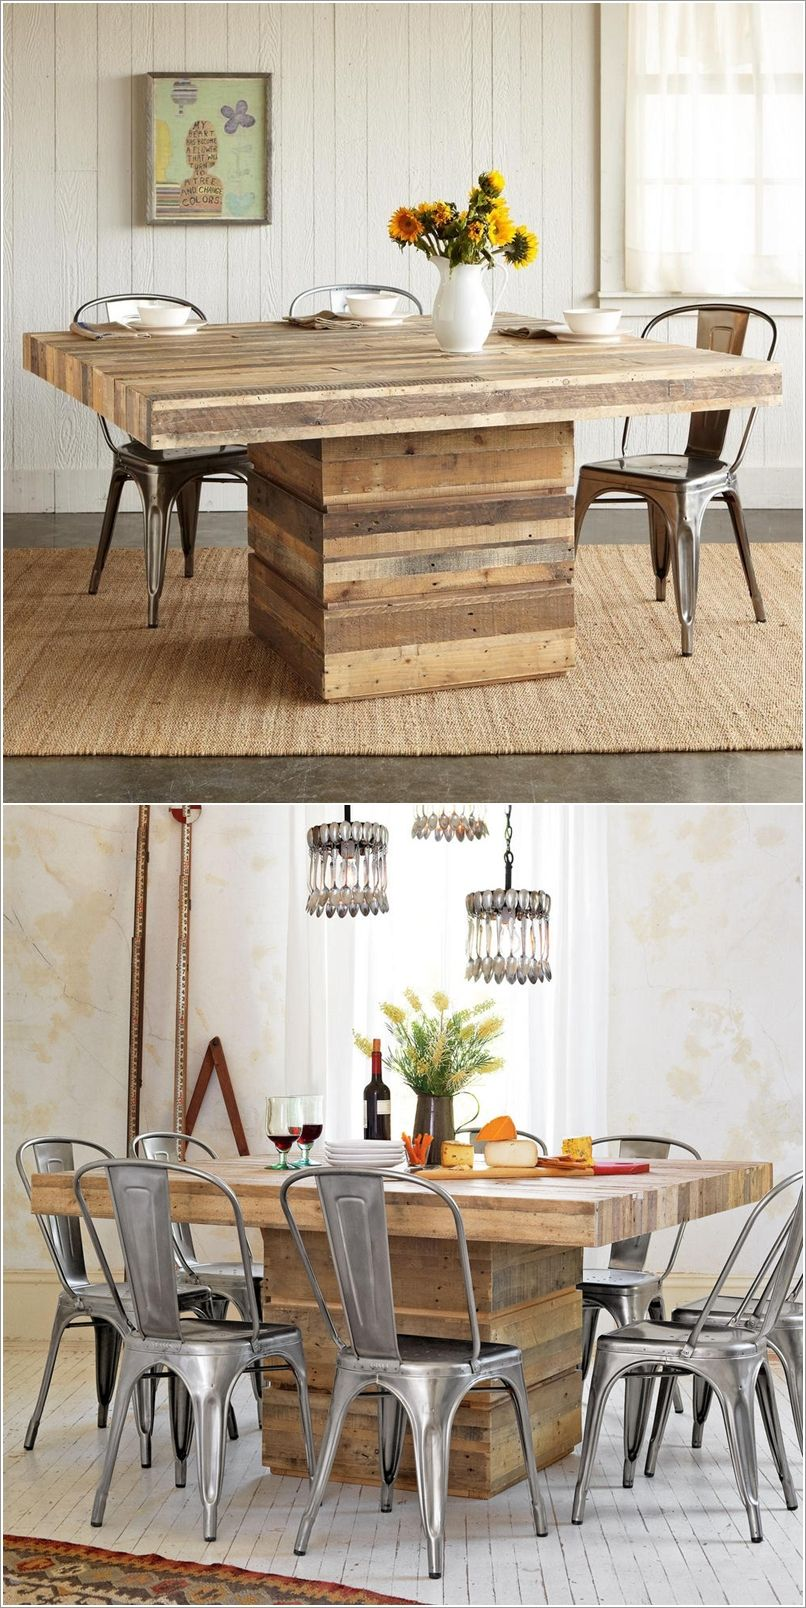 10 Spectacular Diy Dining Table Ideas For Your Home Wood Pallet